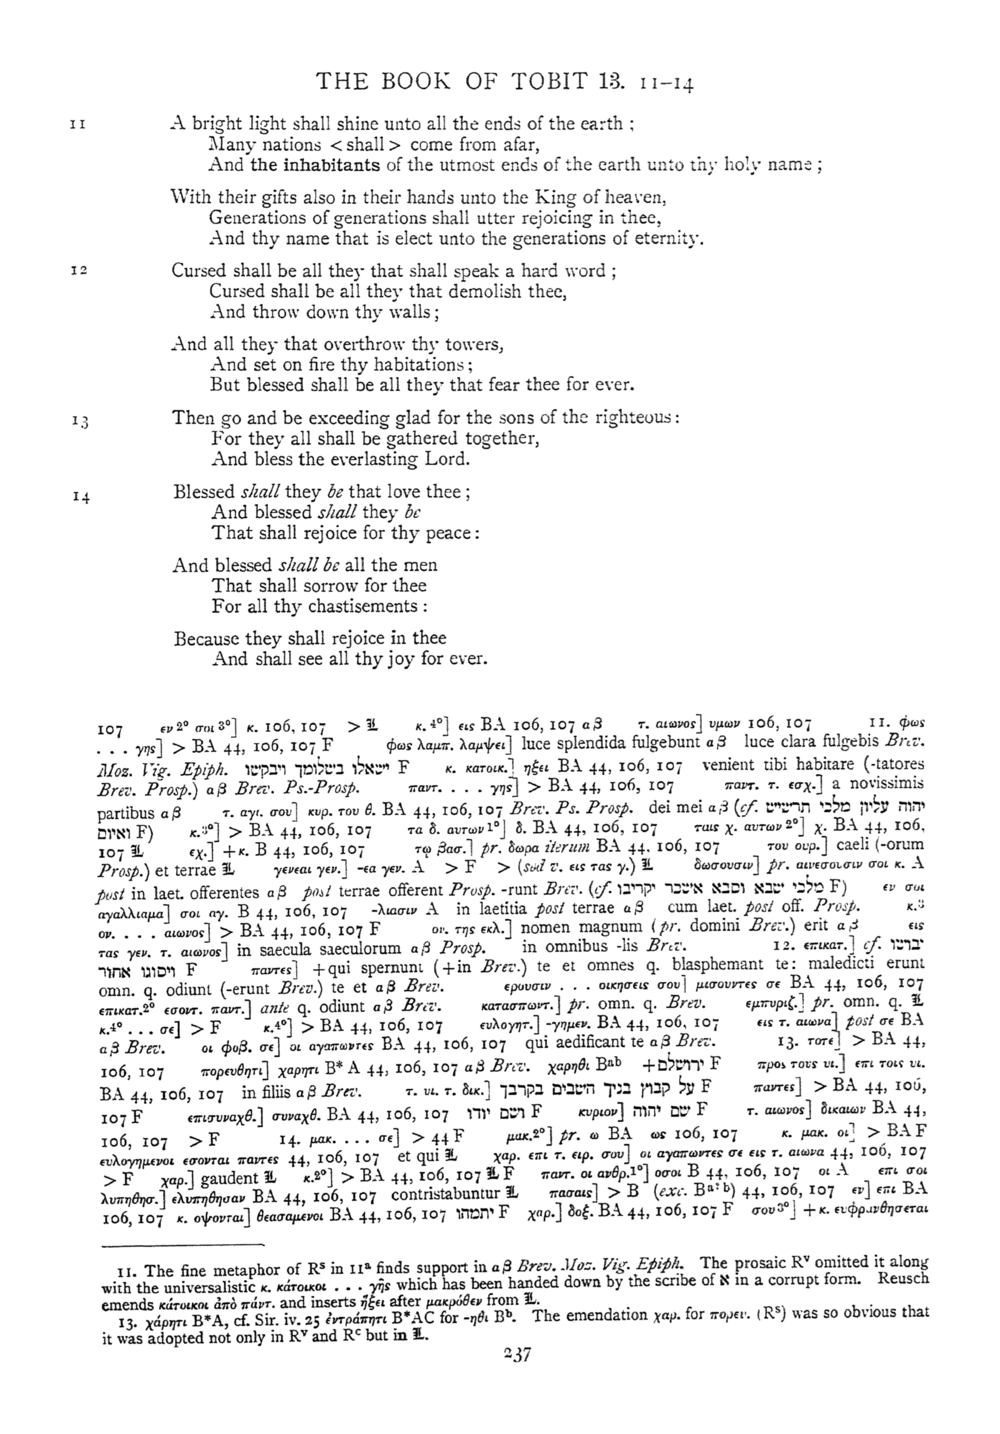 Image of page 237